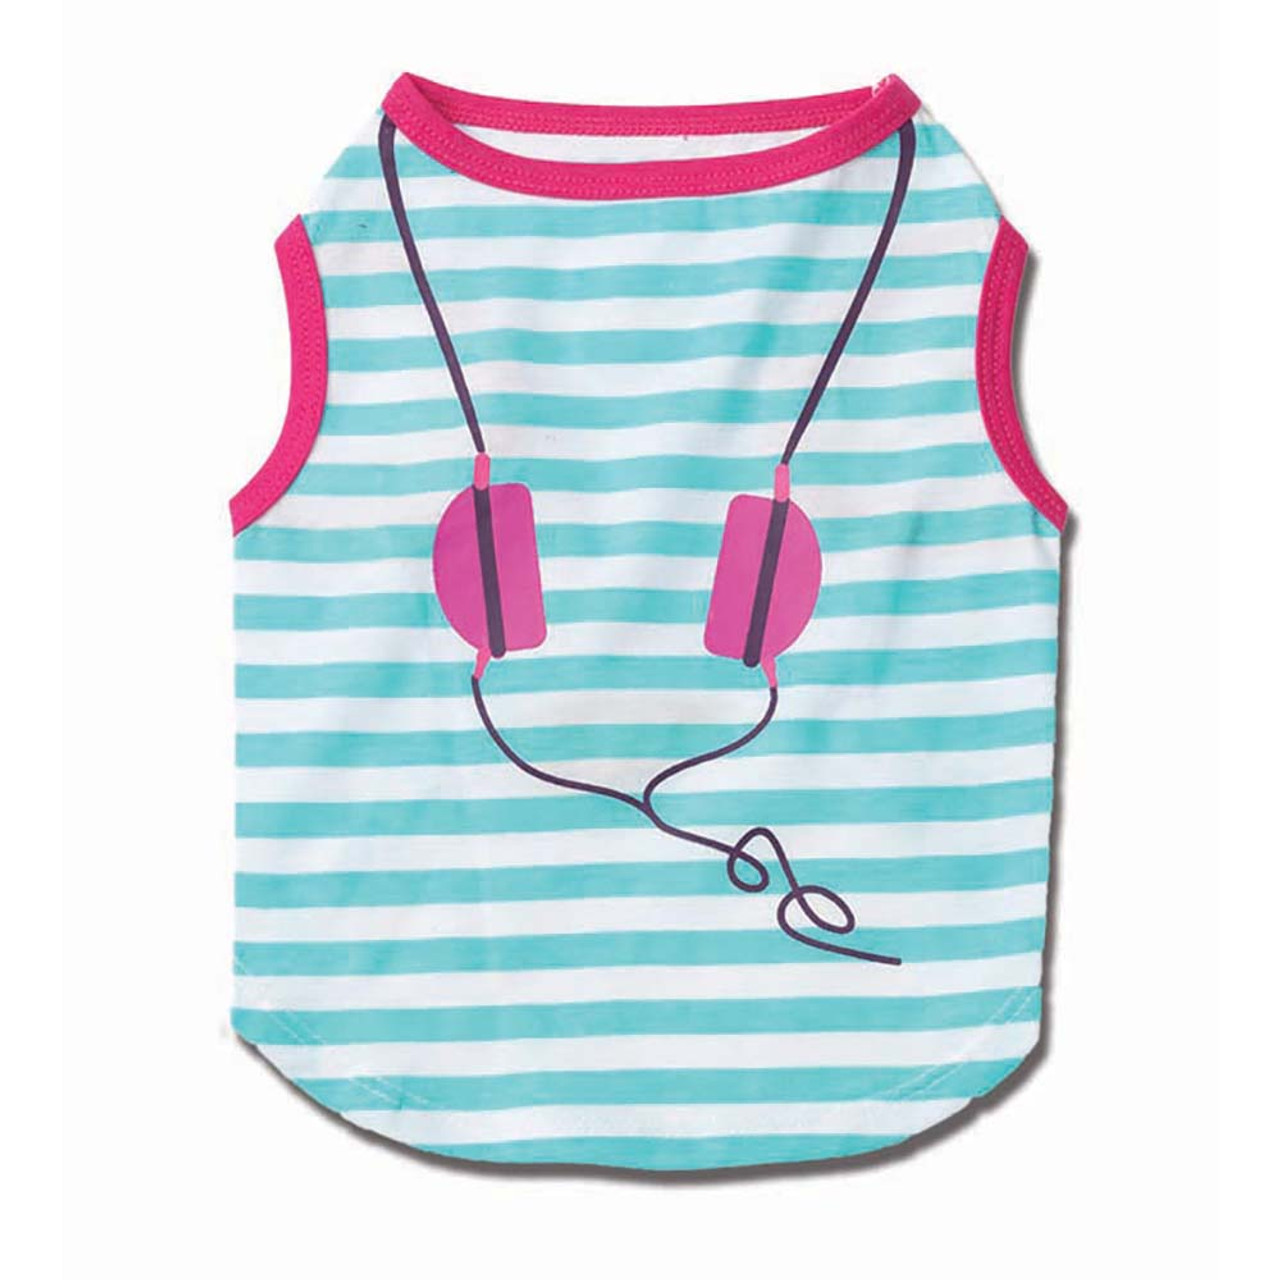 Petrageous Designs Headphones Striped Teal and Pink Graphic Tee for Dogs